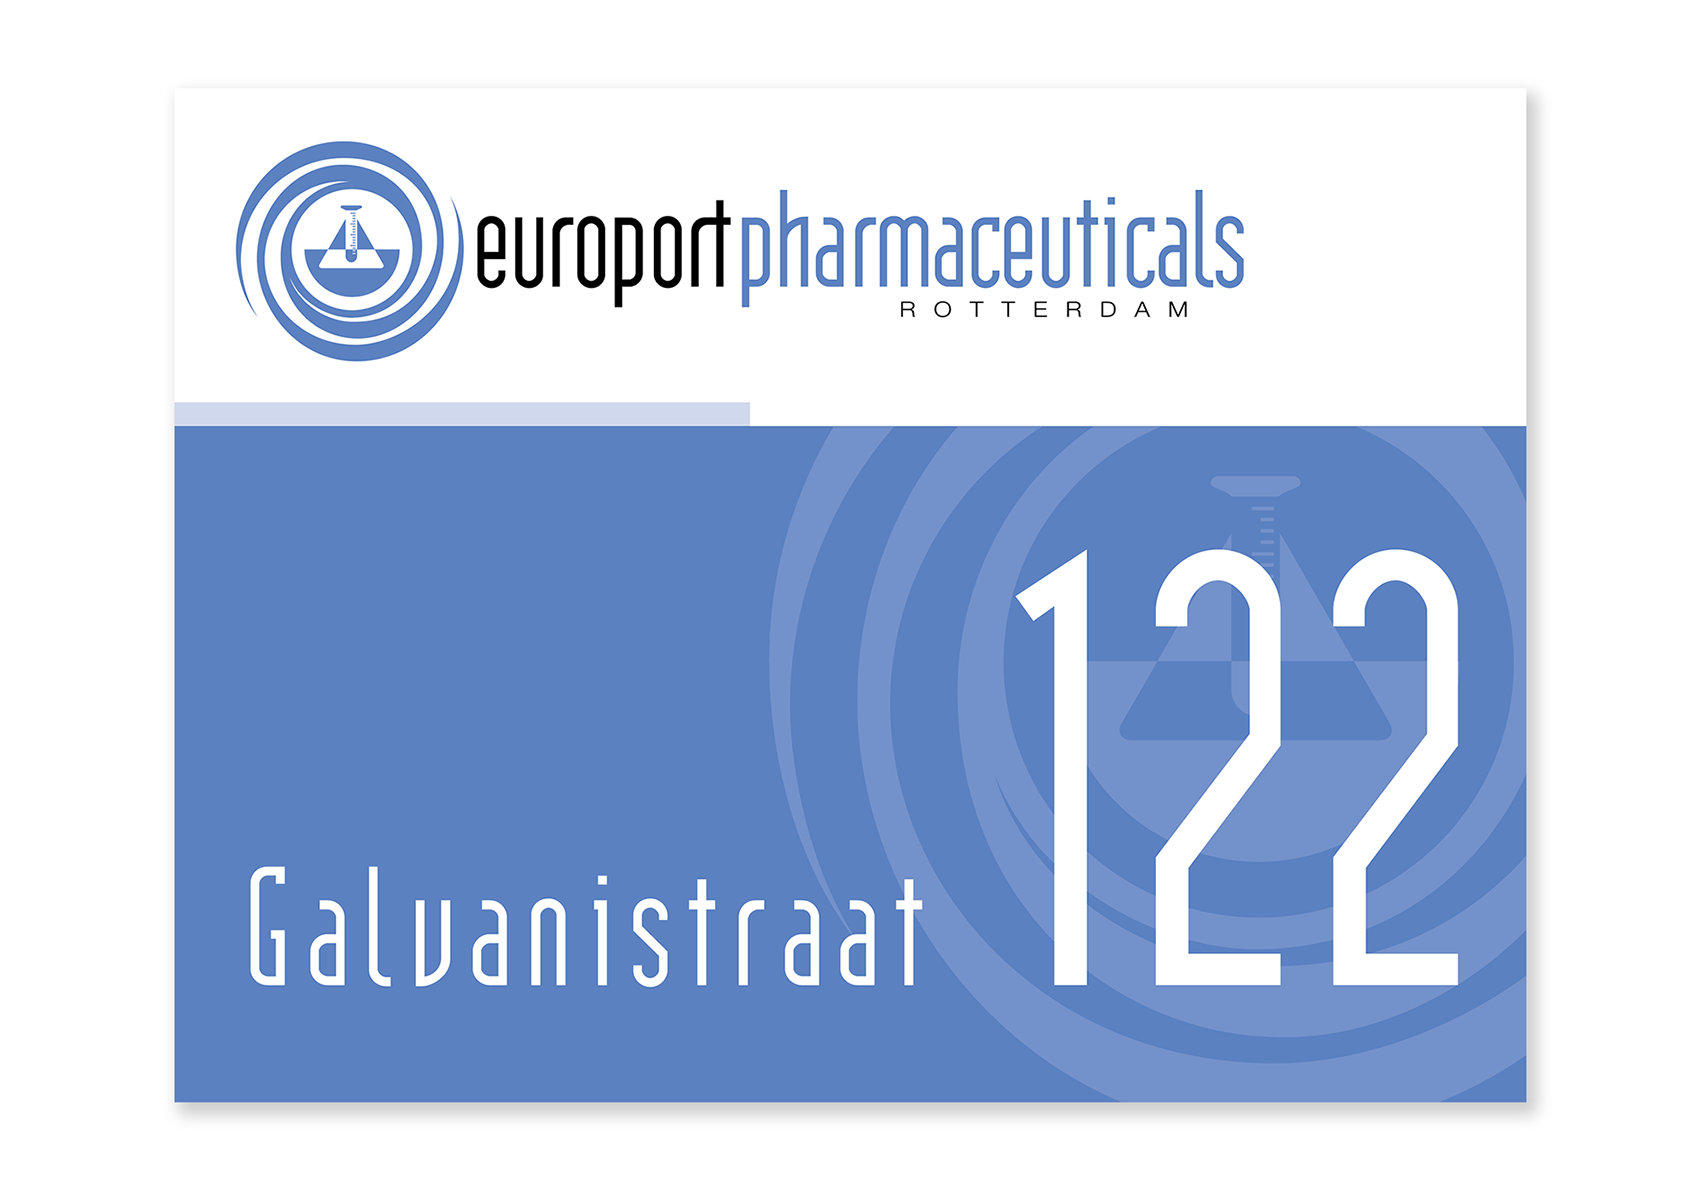 Naambord_Europort Pharma